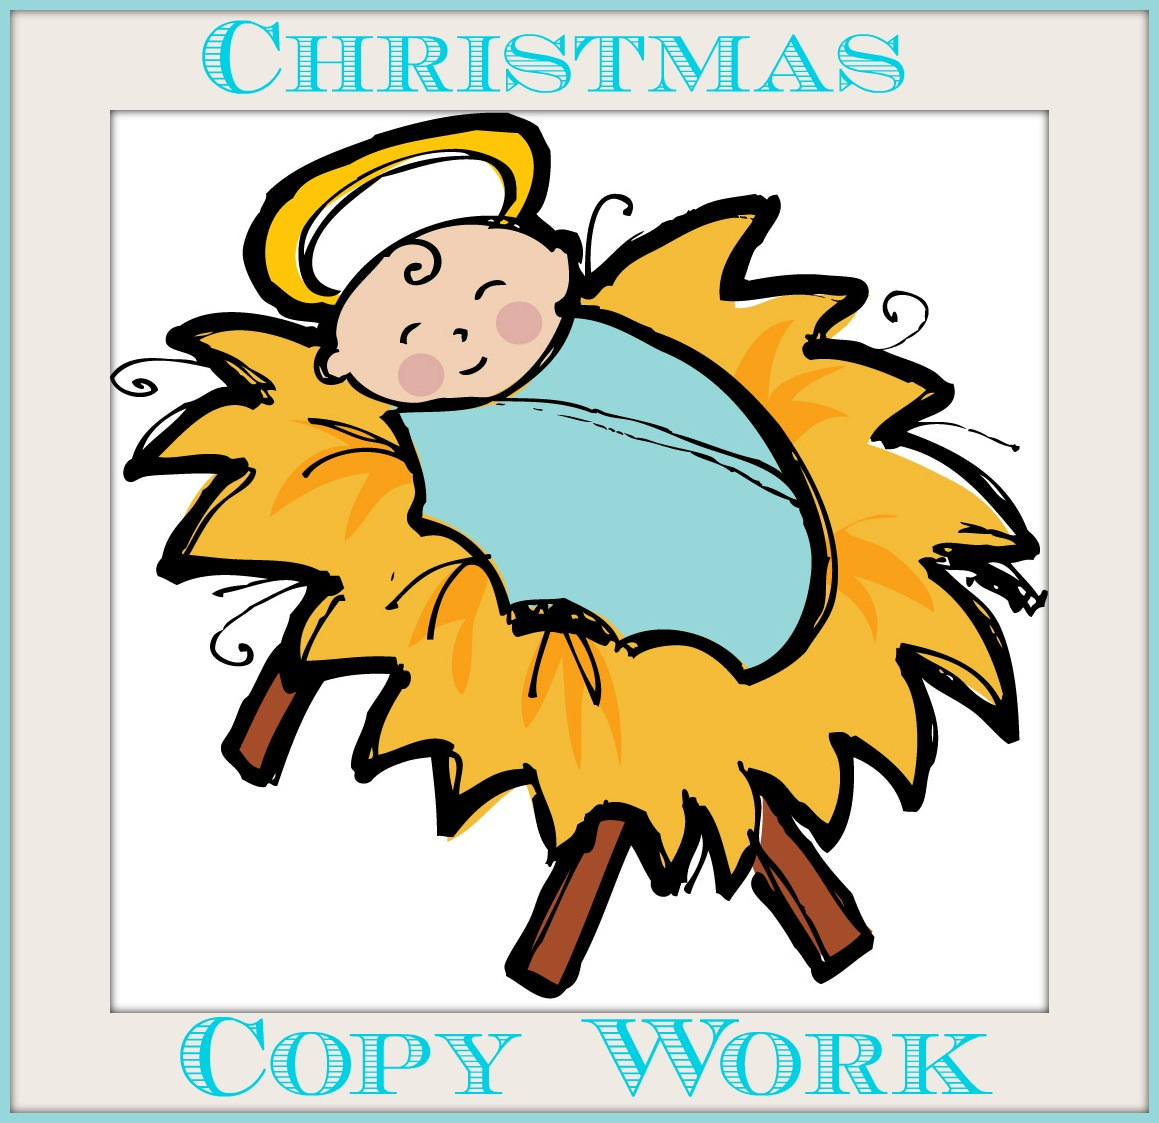 It's just a picture of Free Printable Christmas Story regarding 5th grader